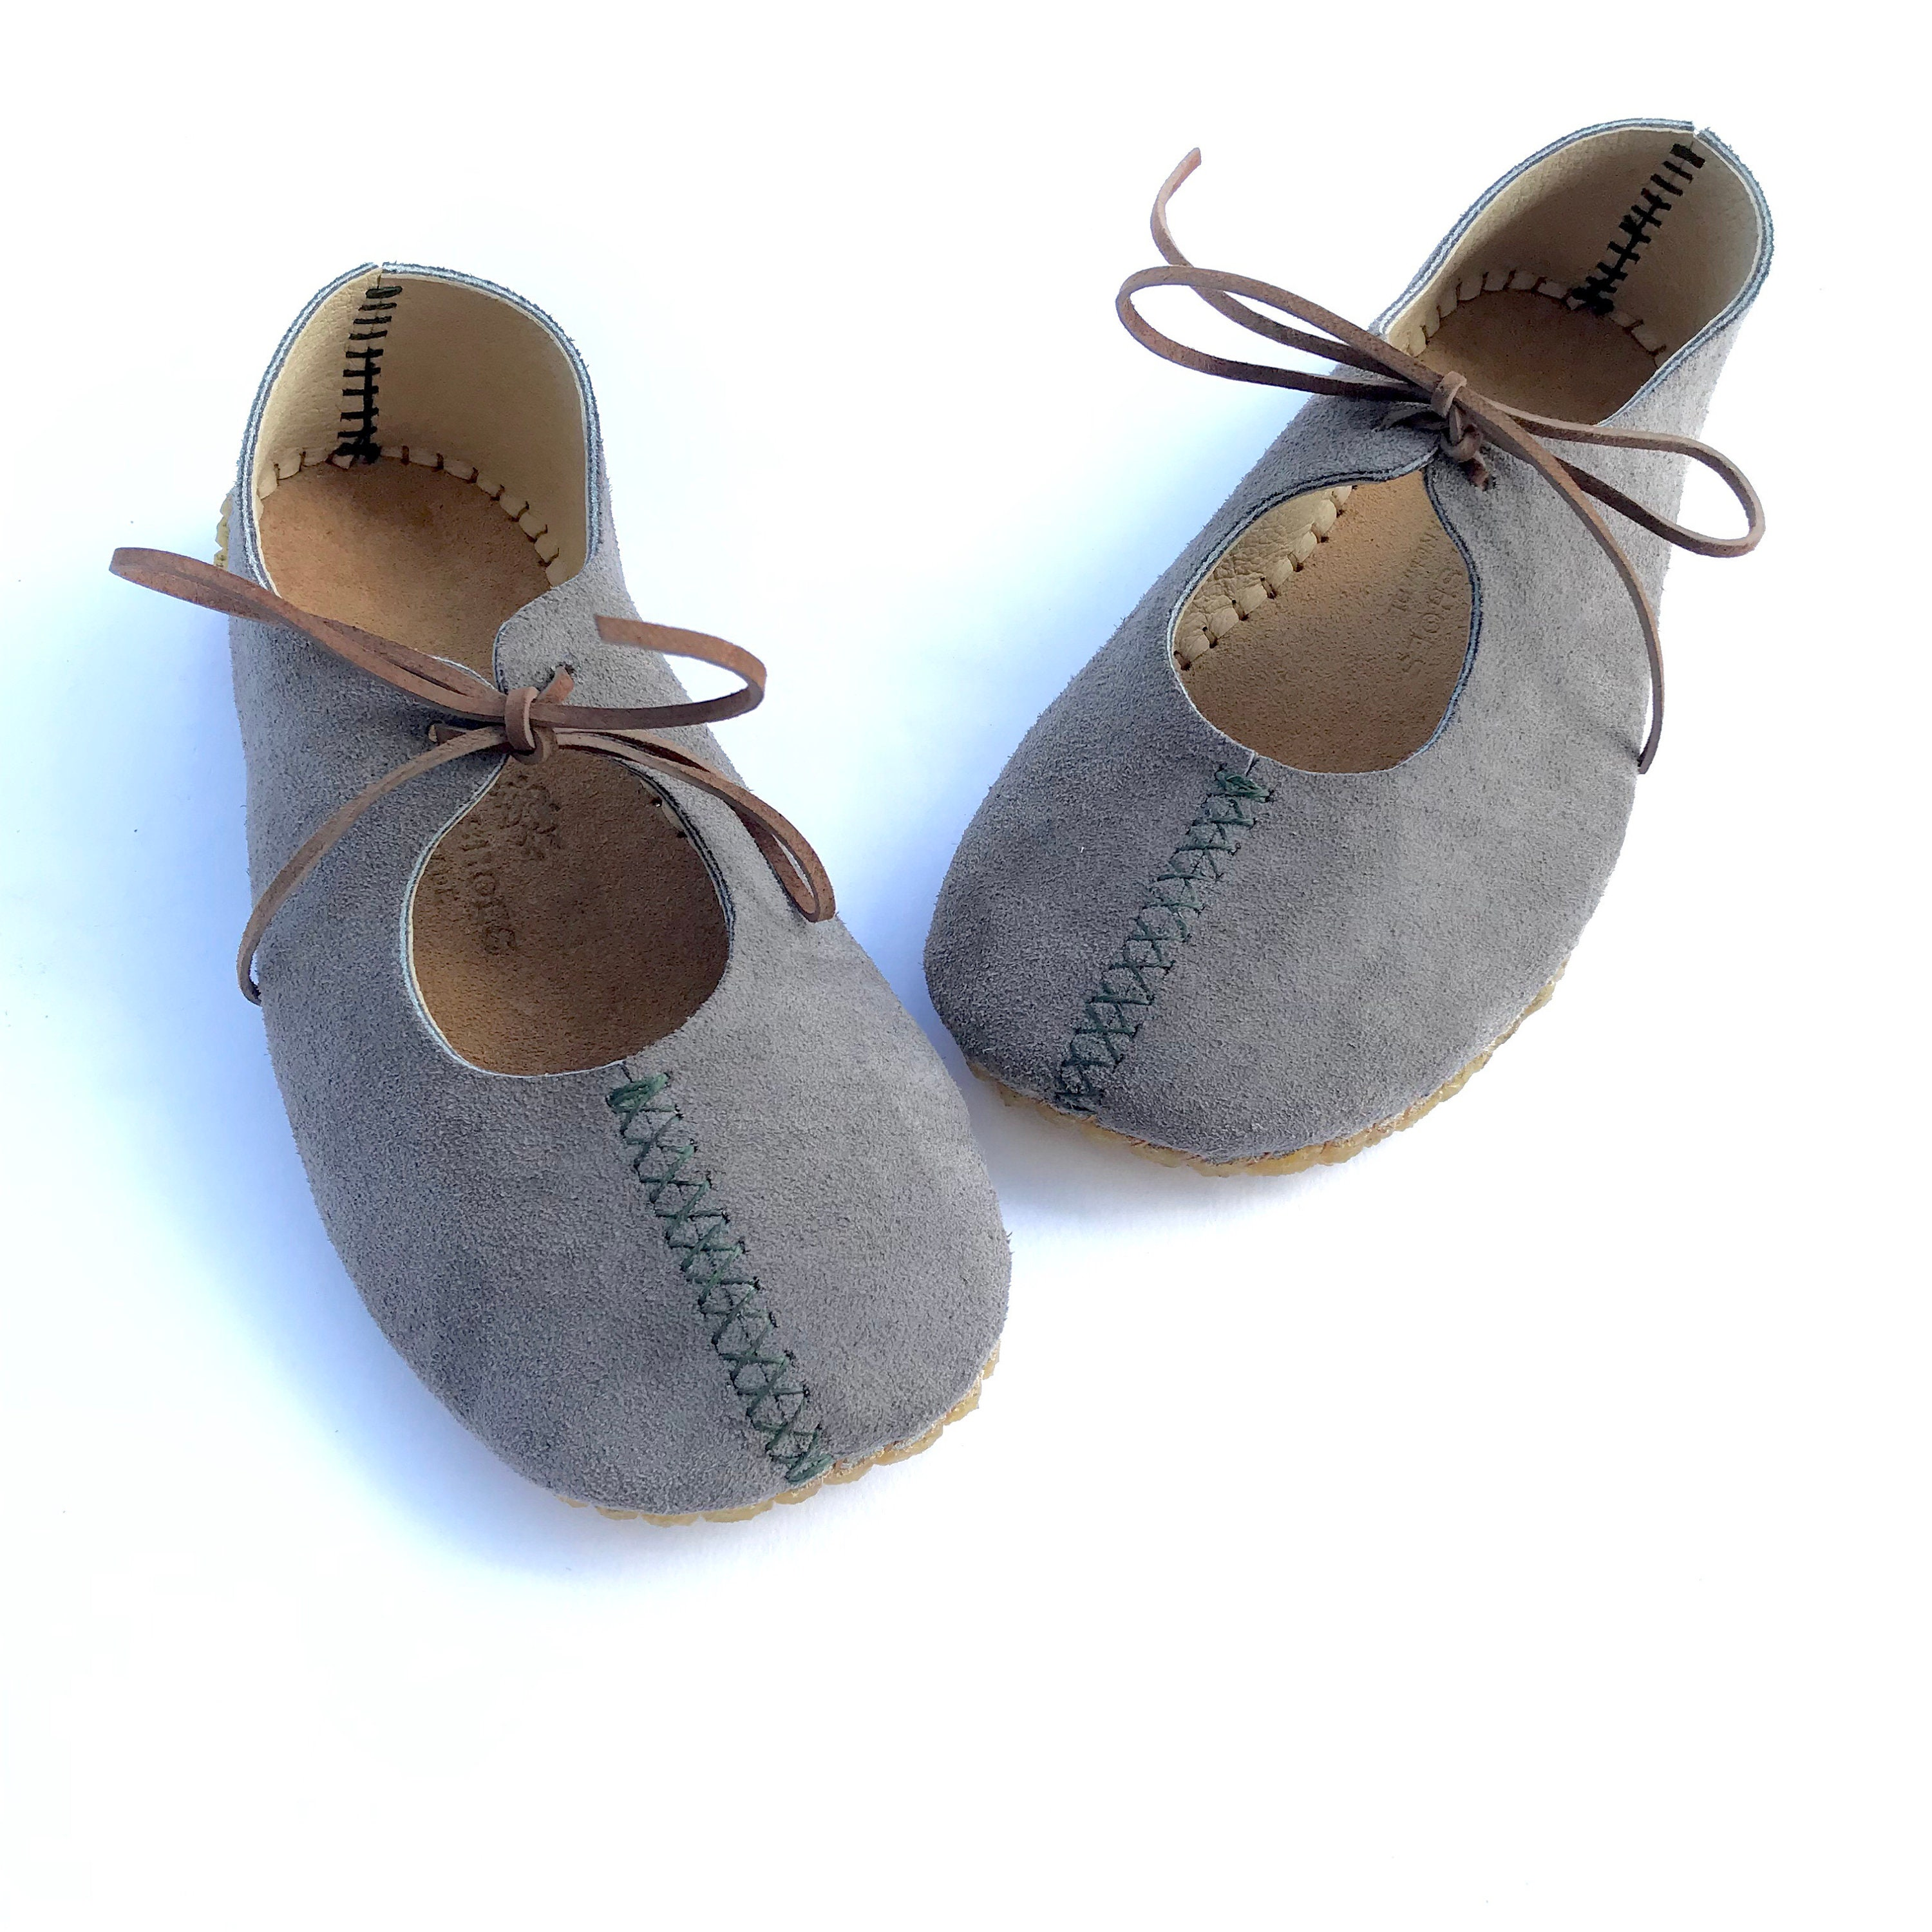 d2fcd0e6ea1 Rose Ghillies ~ indoor outdoor barefoot shoes with X-stitches by Farm Shoes  Handmade